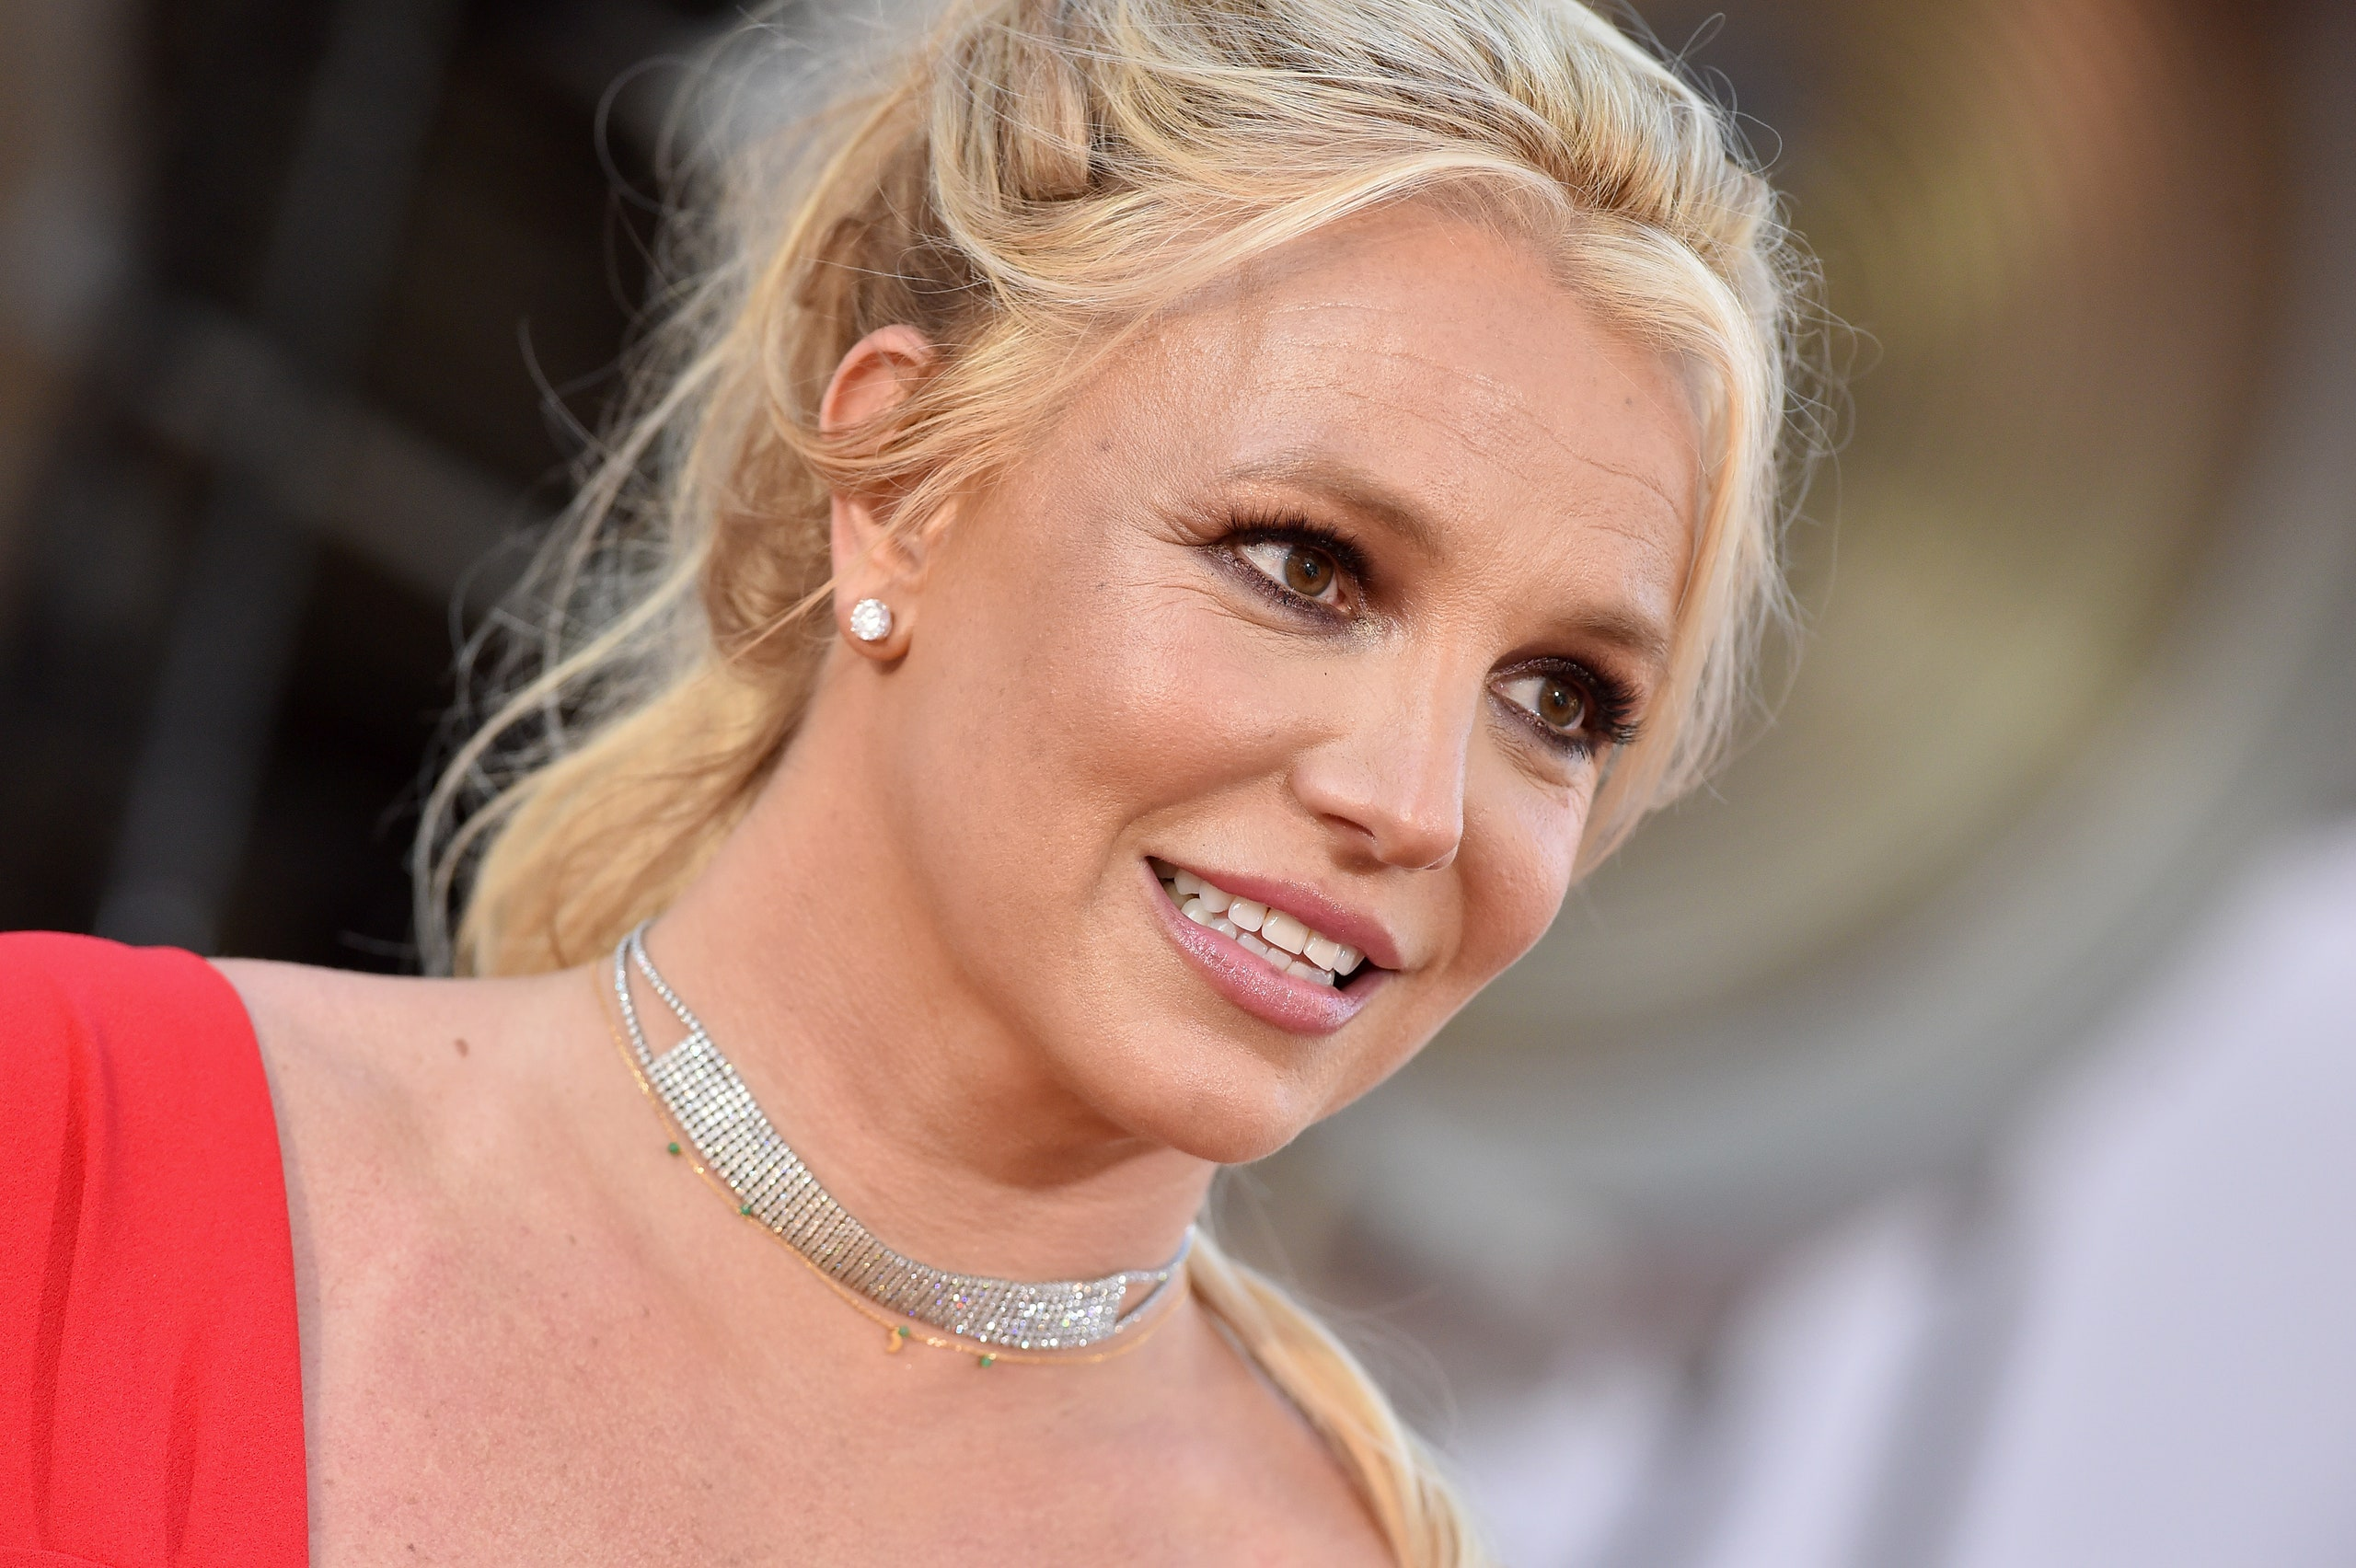 Britney Spears would like to do an Oprah interview to share her side of story